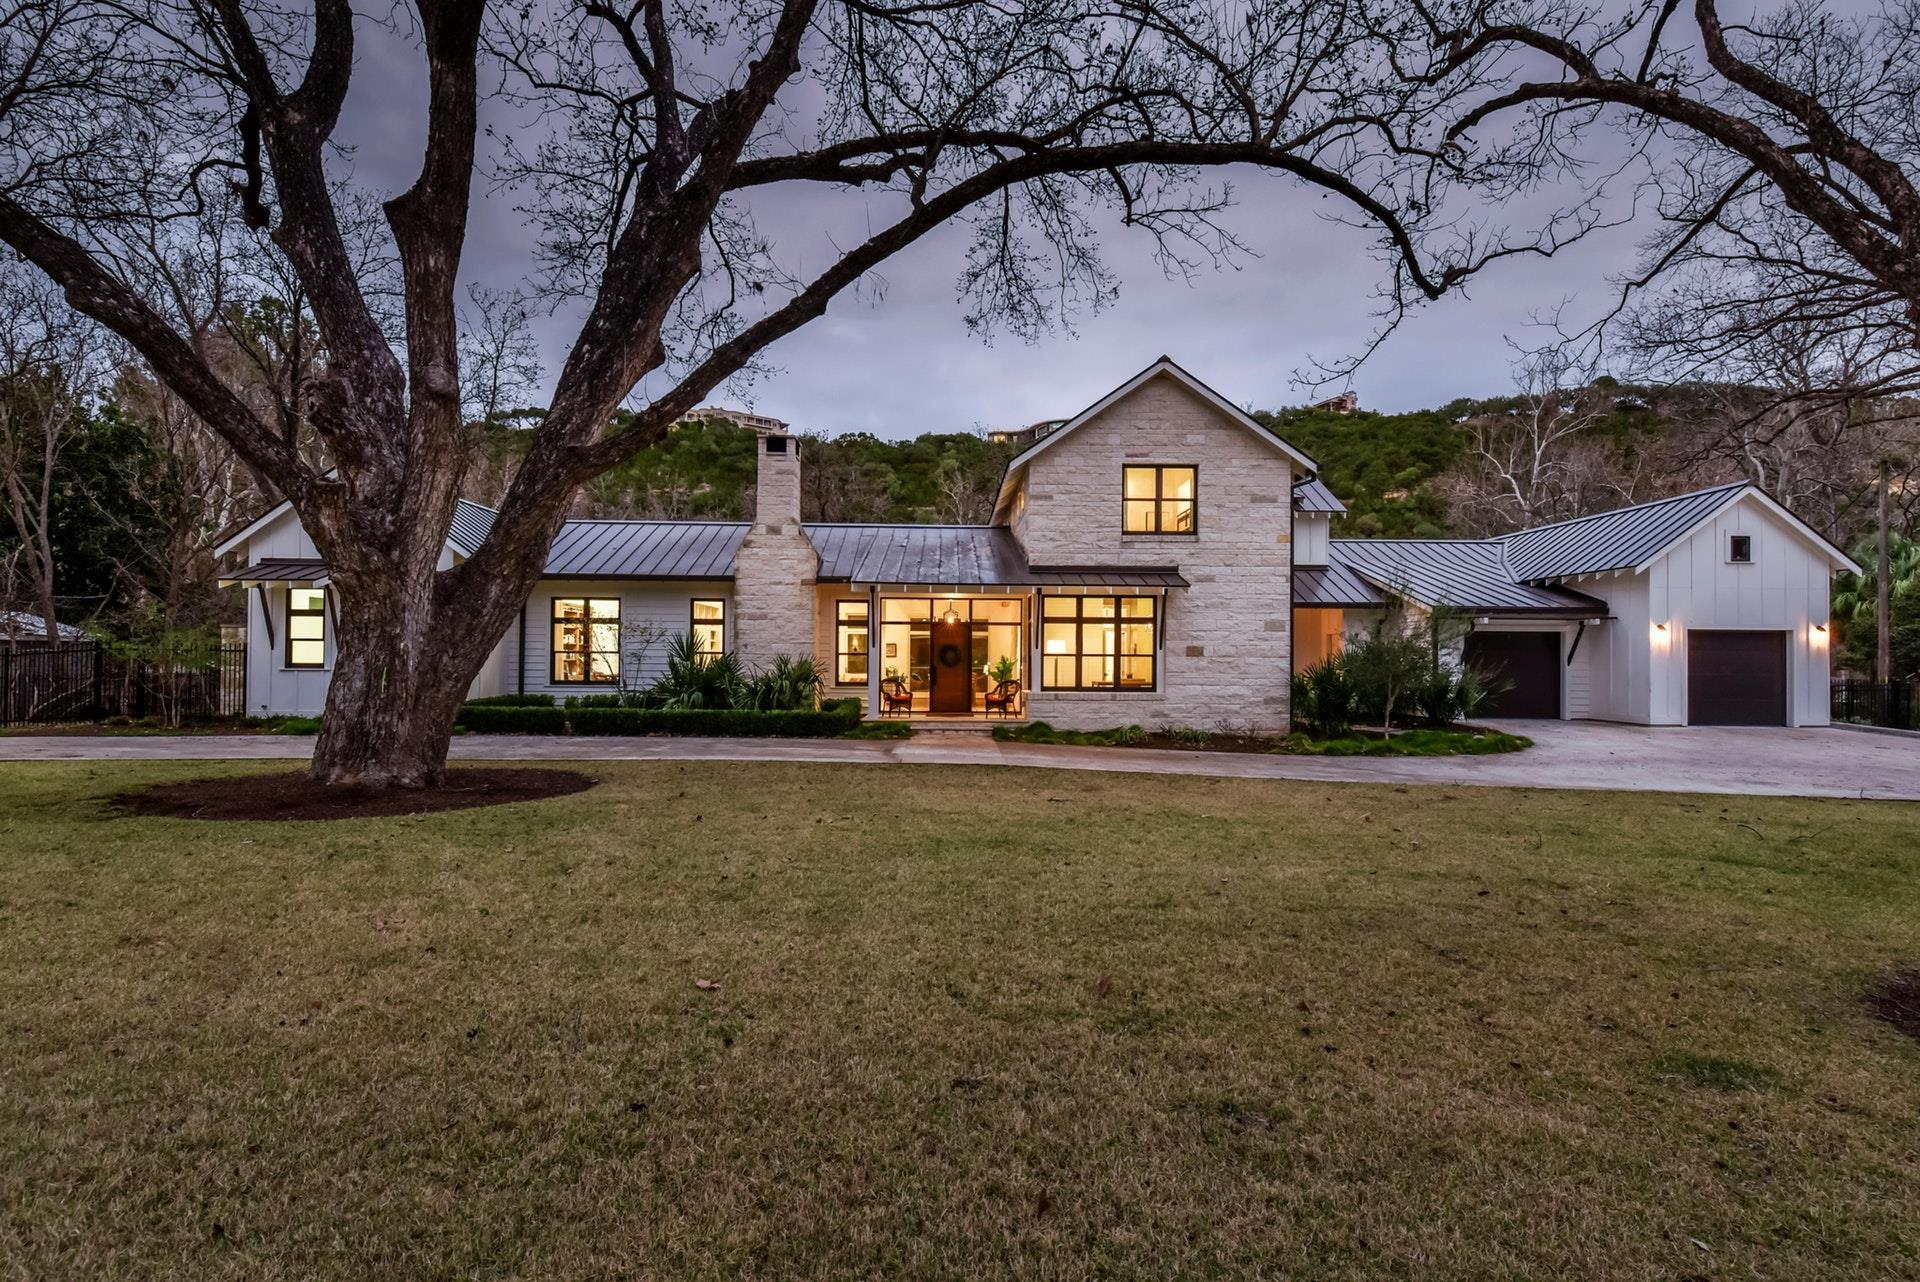 Single Family Home for Sale at 3120 Edgewater Drive 3120 Edgewater Drive Austin, Texas 78733 United States